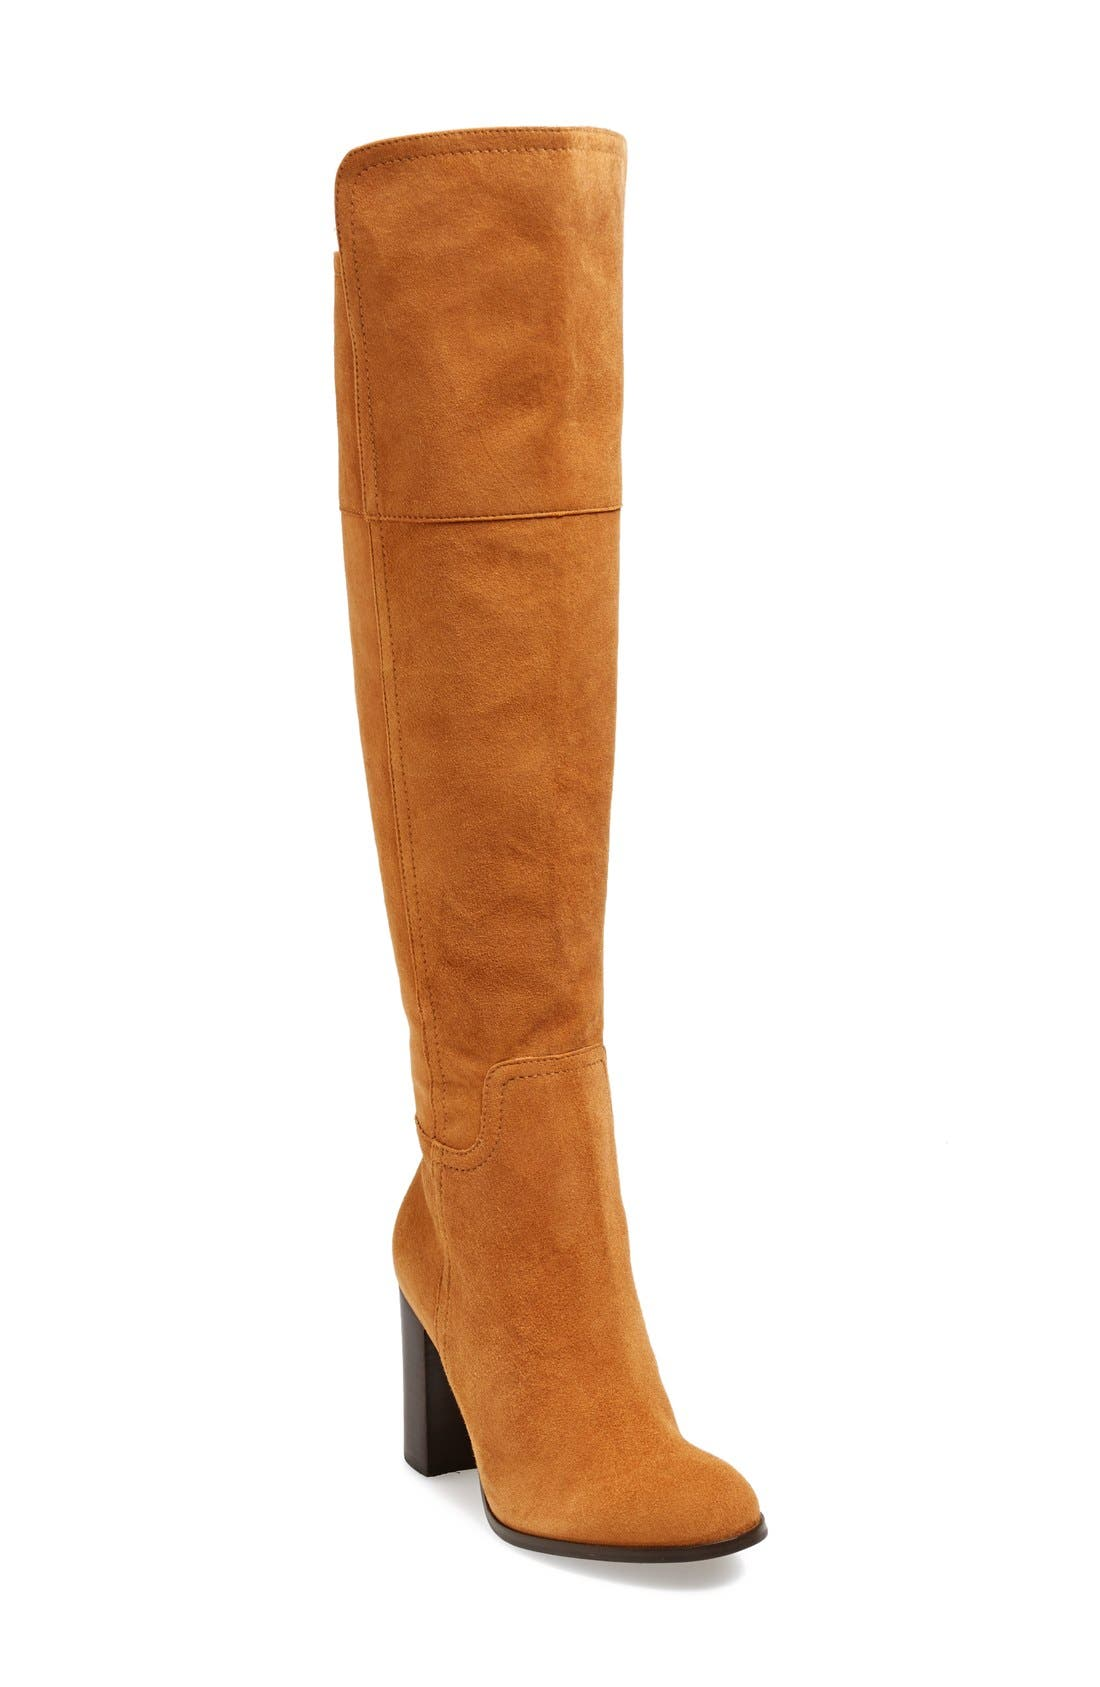 Alternate Image 1 Selected - Pour la Victoire 'Talia' Suede Tall Boot (Women)